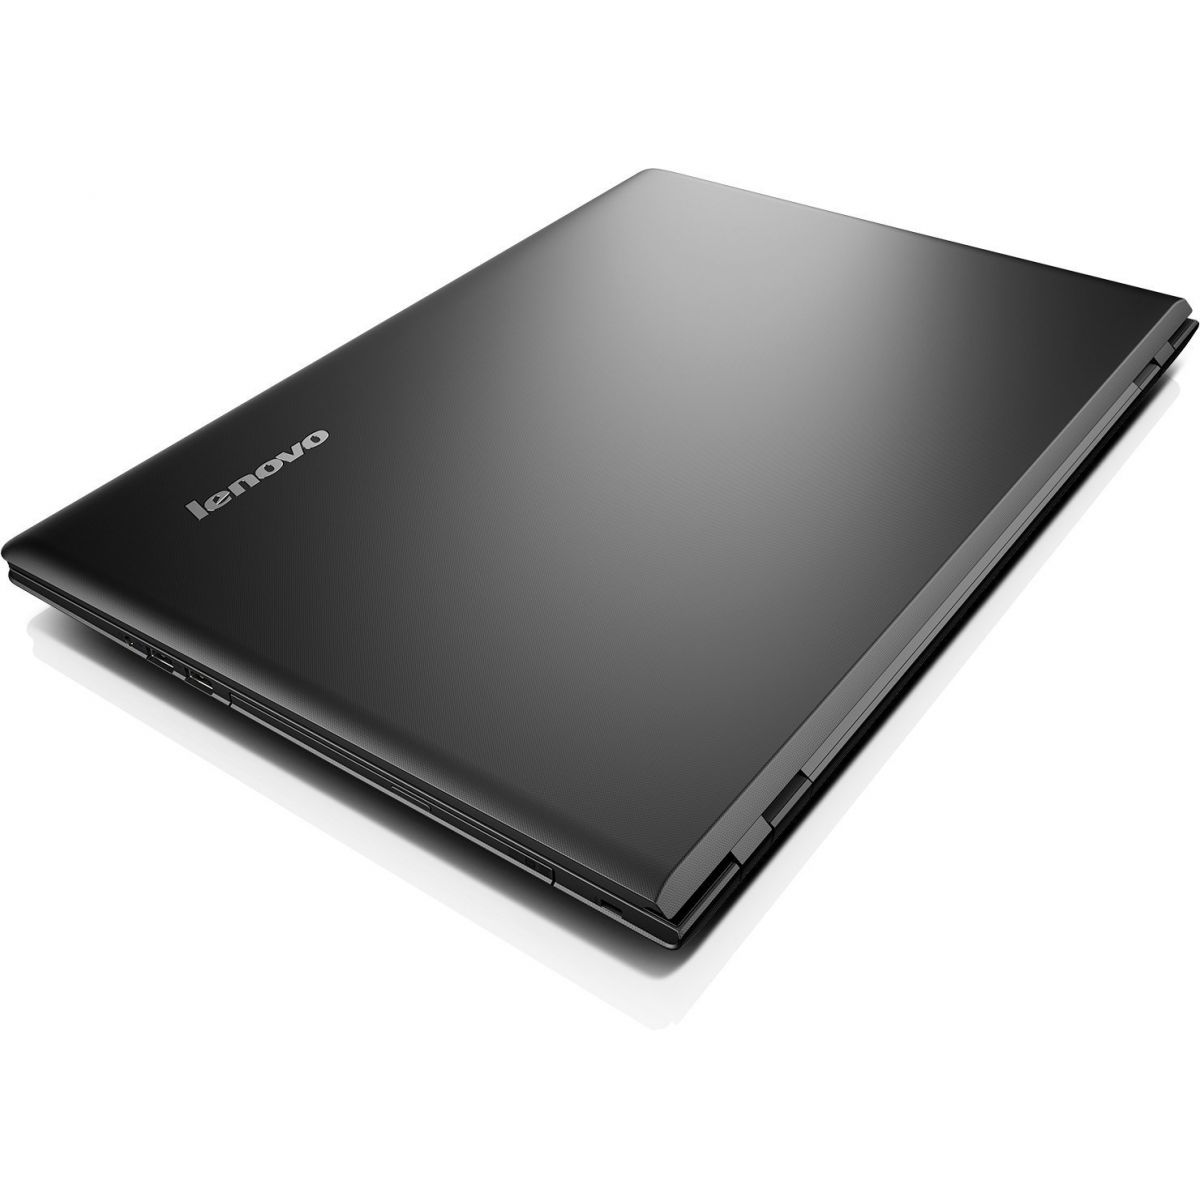 Notebook Lenovo IdeaPad 300 17